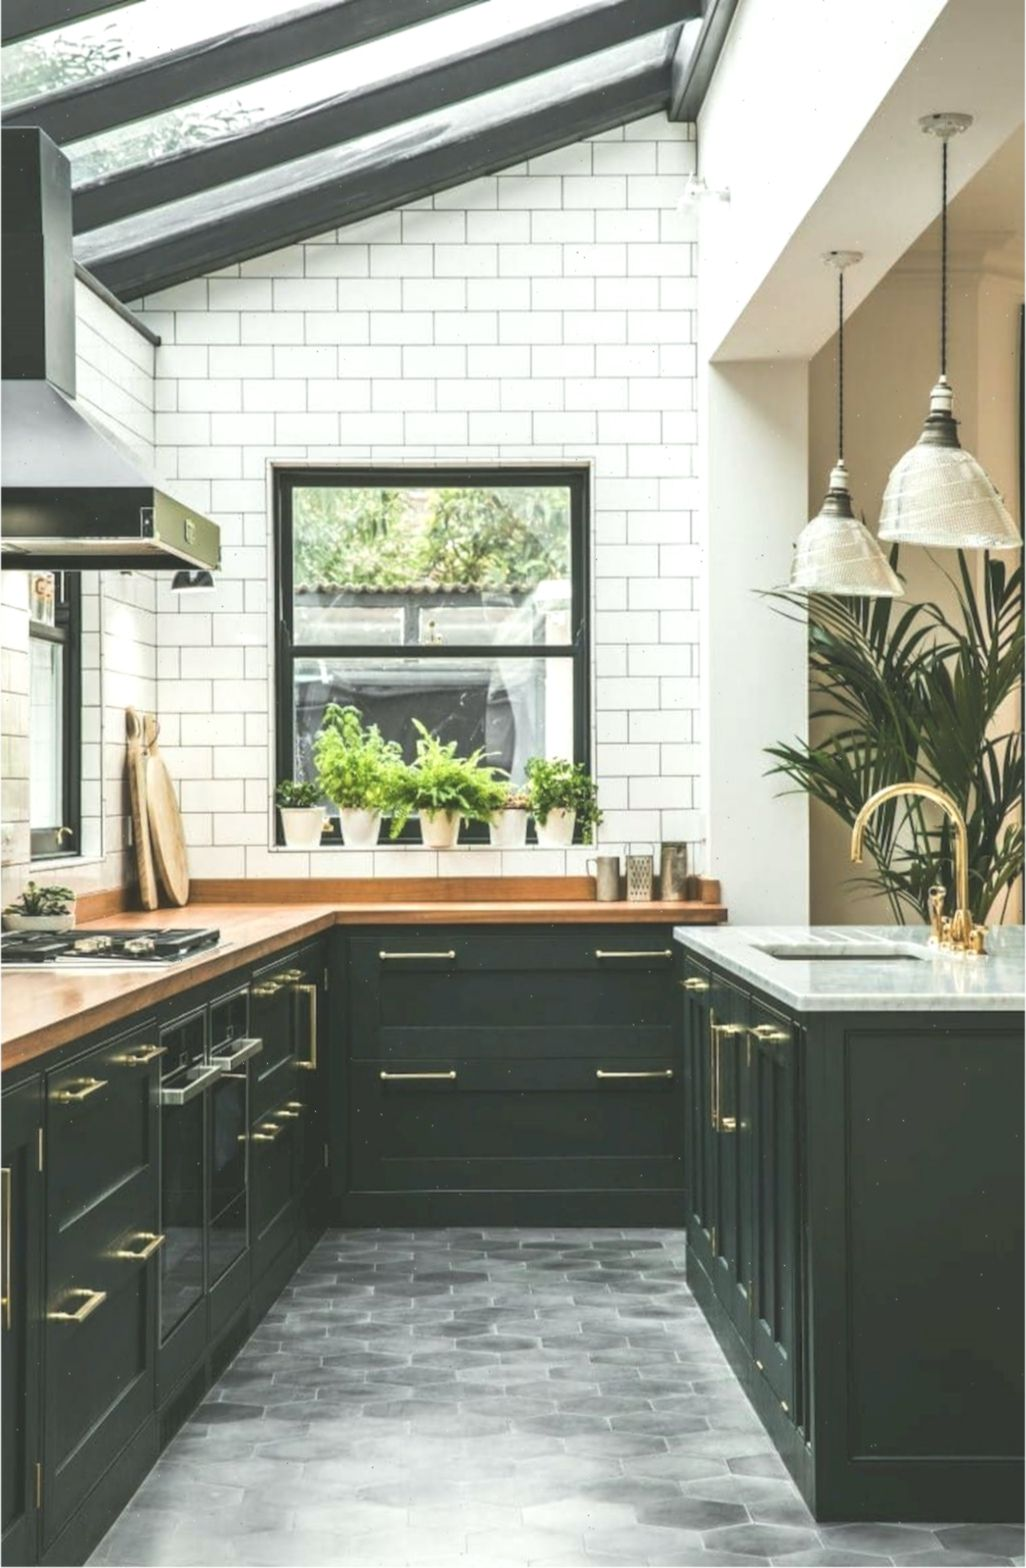 Pin On Small Kitchen Ideas With Island